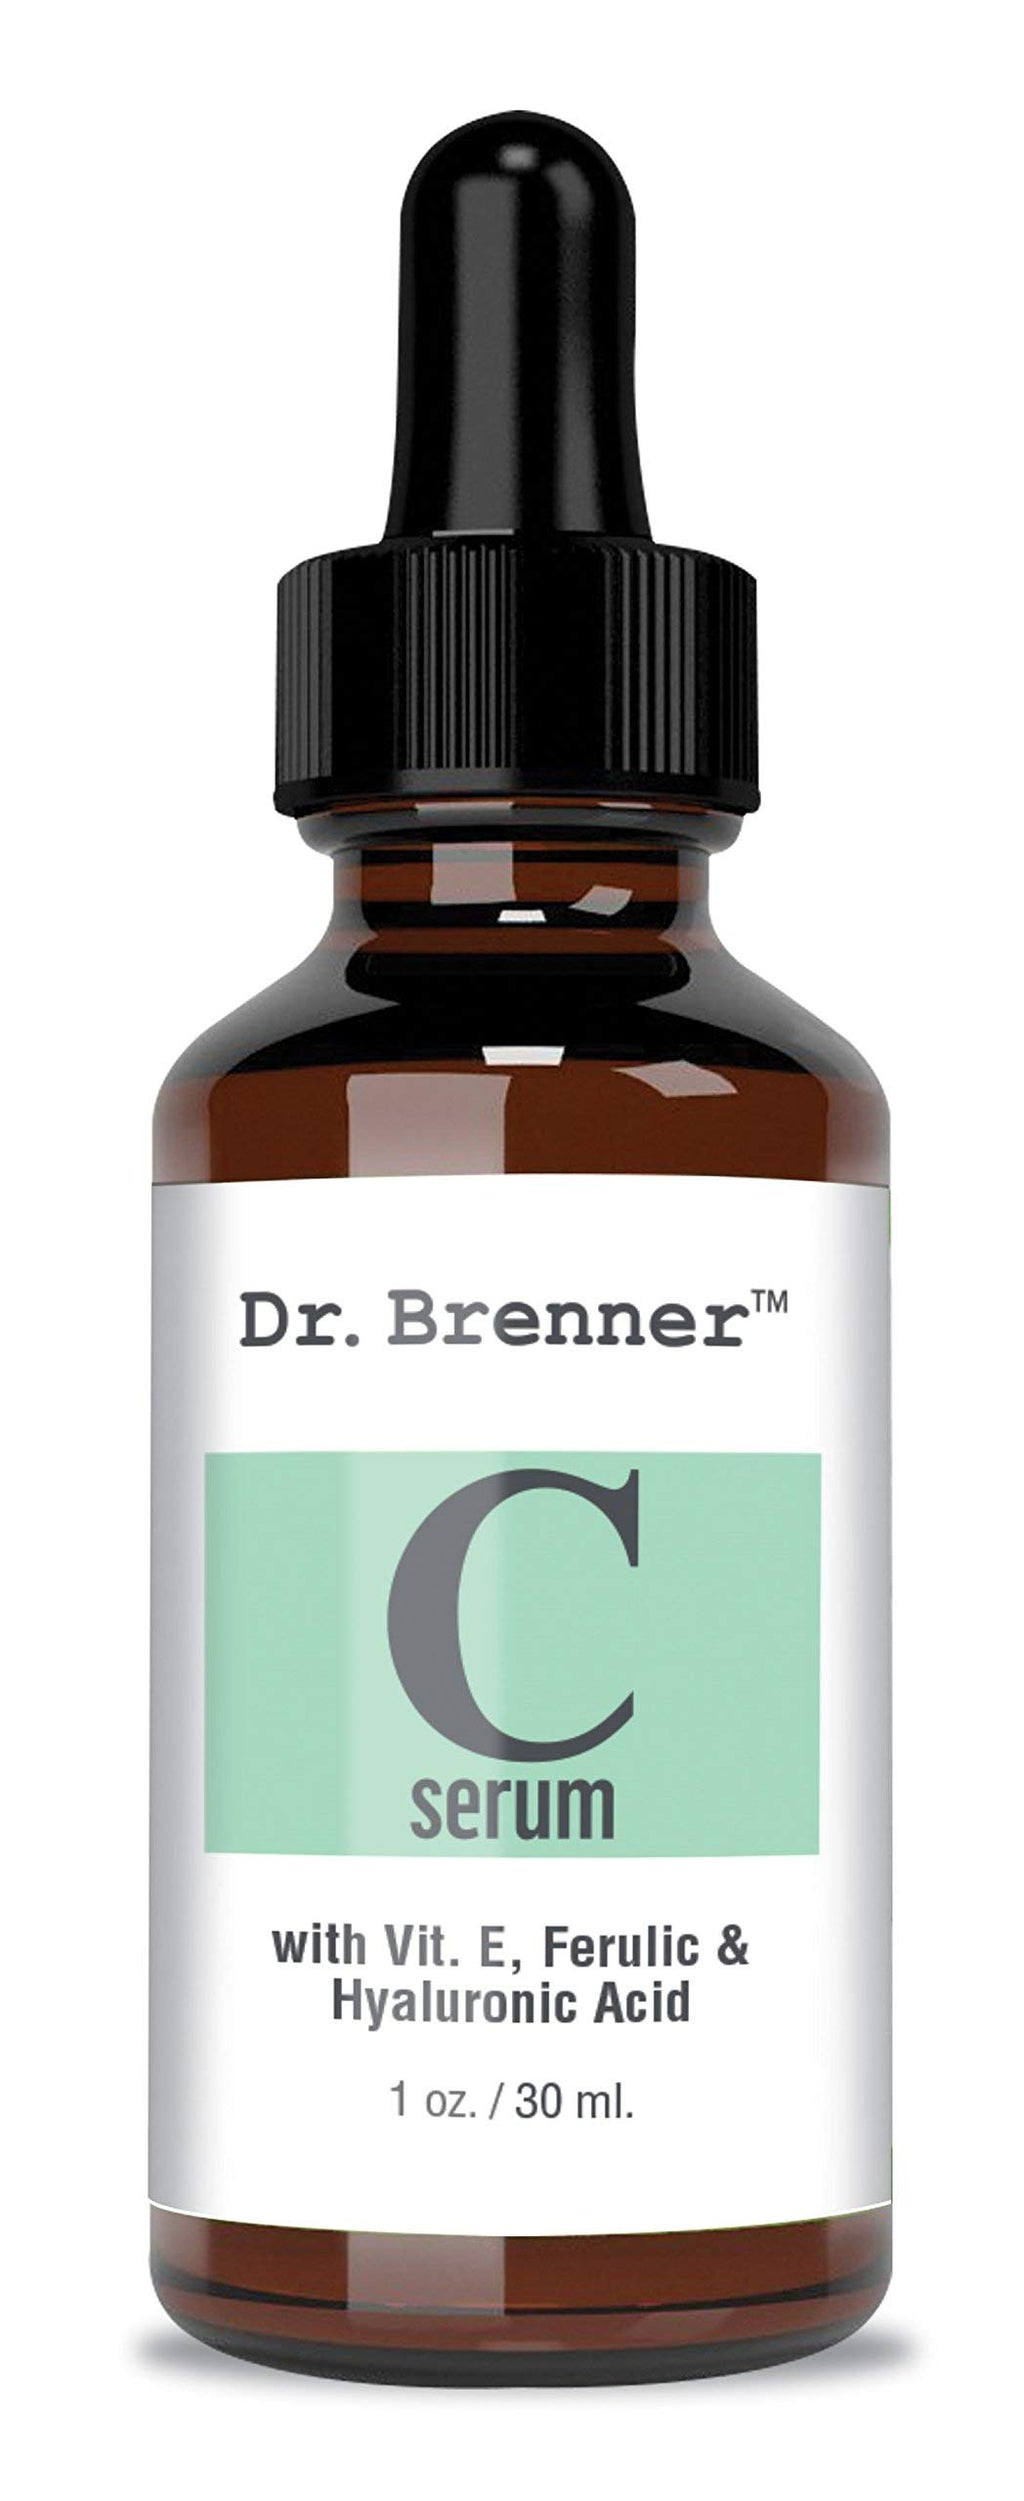 Vitamin C Serum 20% Pure L-Ascorbic Acid, Ferulic Acid, Vitamin E and Hyaluronic Acid for Face and Eyes Natural Anti Aging Anti Wrinkle 1oz. by Dr. Brenner 1 Ounce